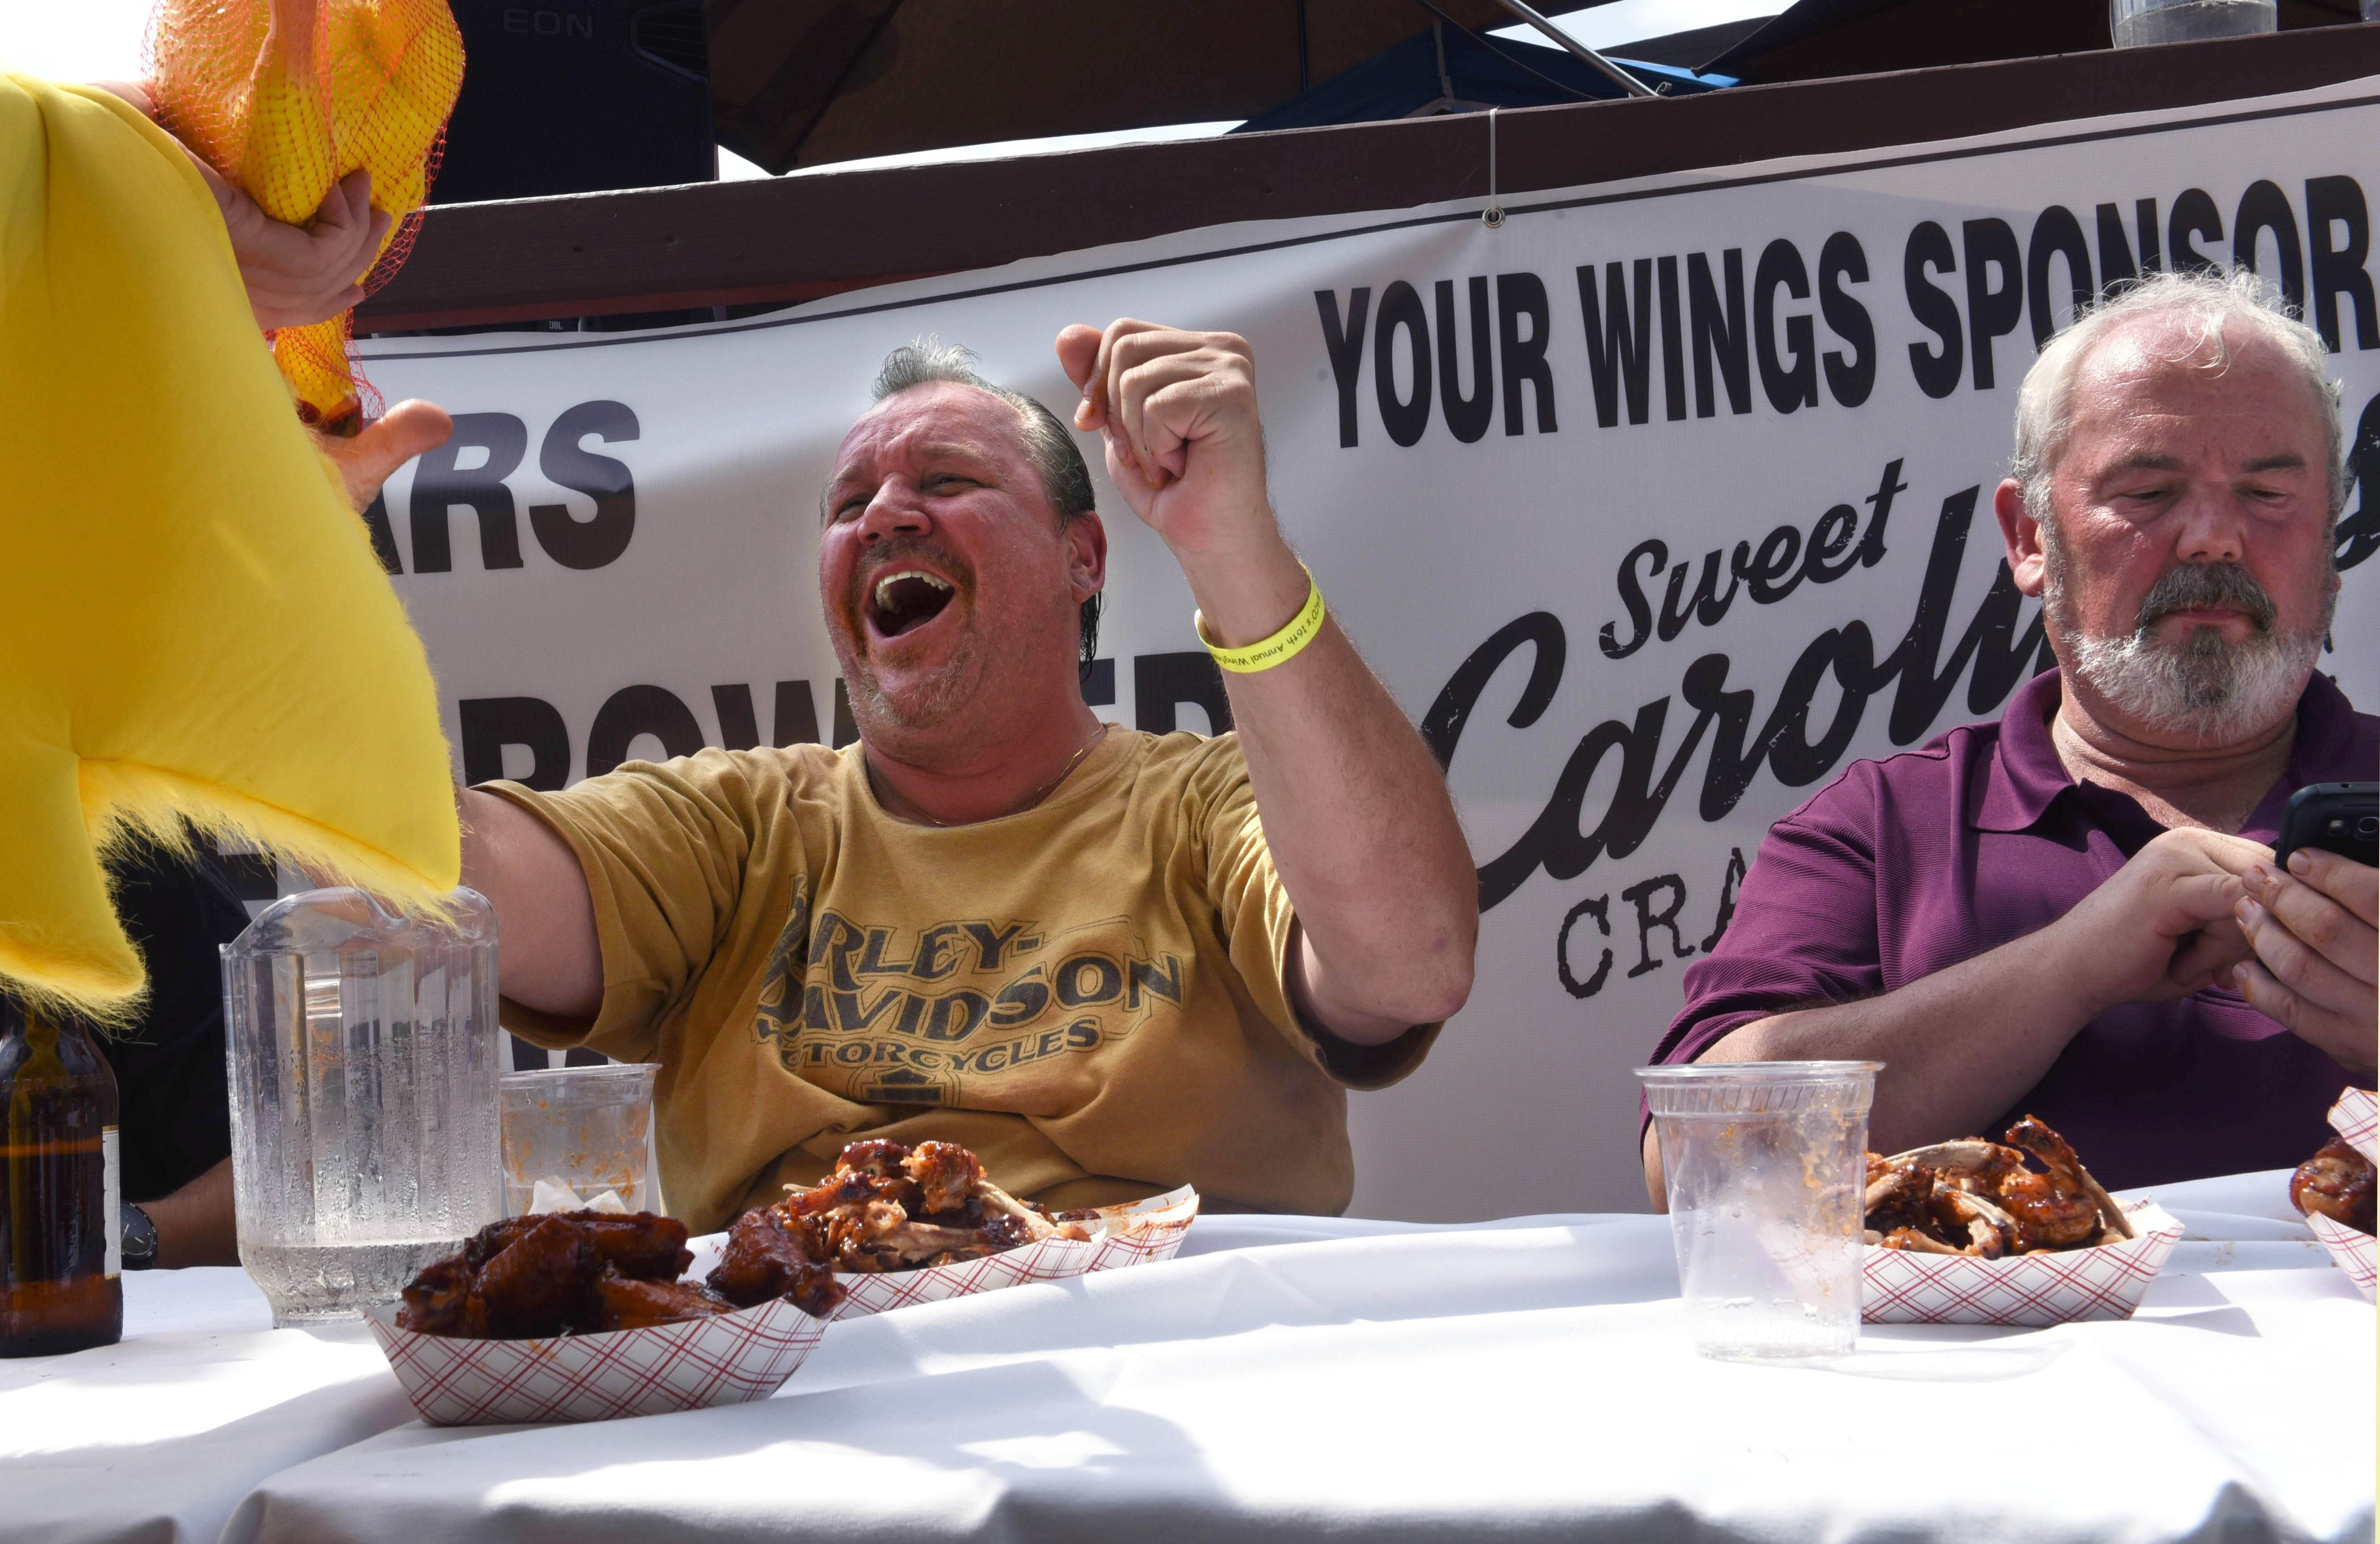 Joe Daniszewski of Mount Prospect reacts after winning first place in a wing-eating contest during last year's Woodfield Area Children's Organization's Wingfest in Schaumburg.